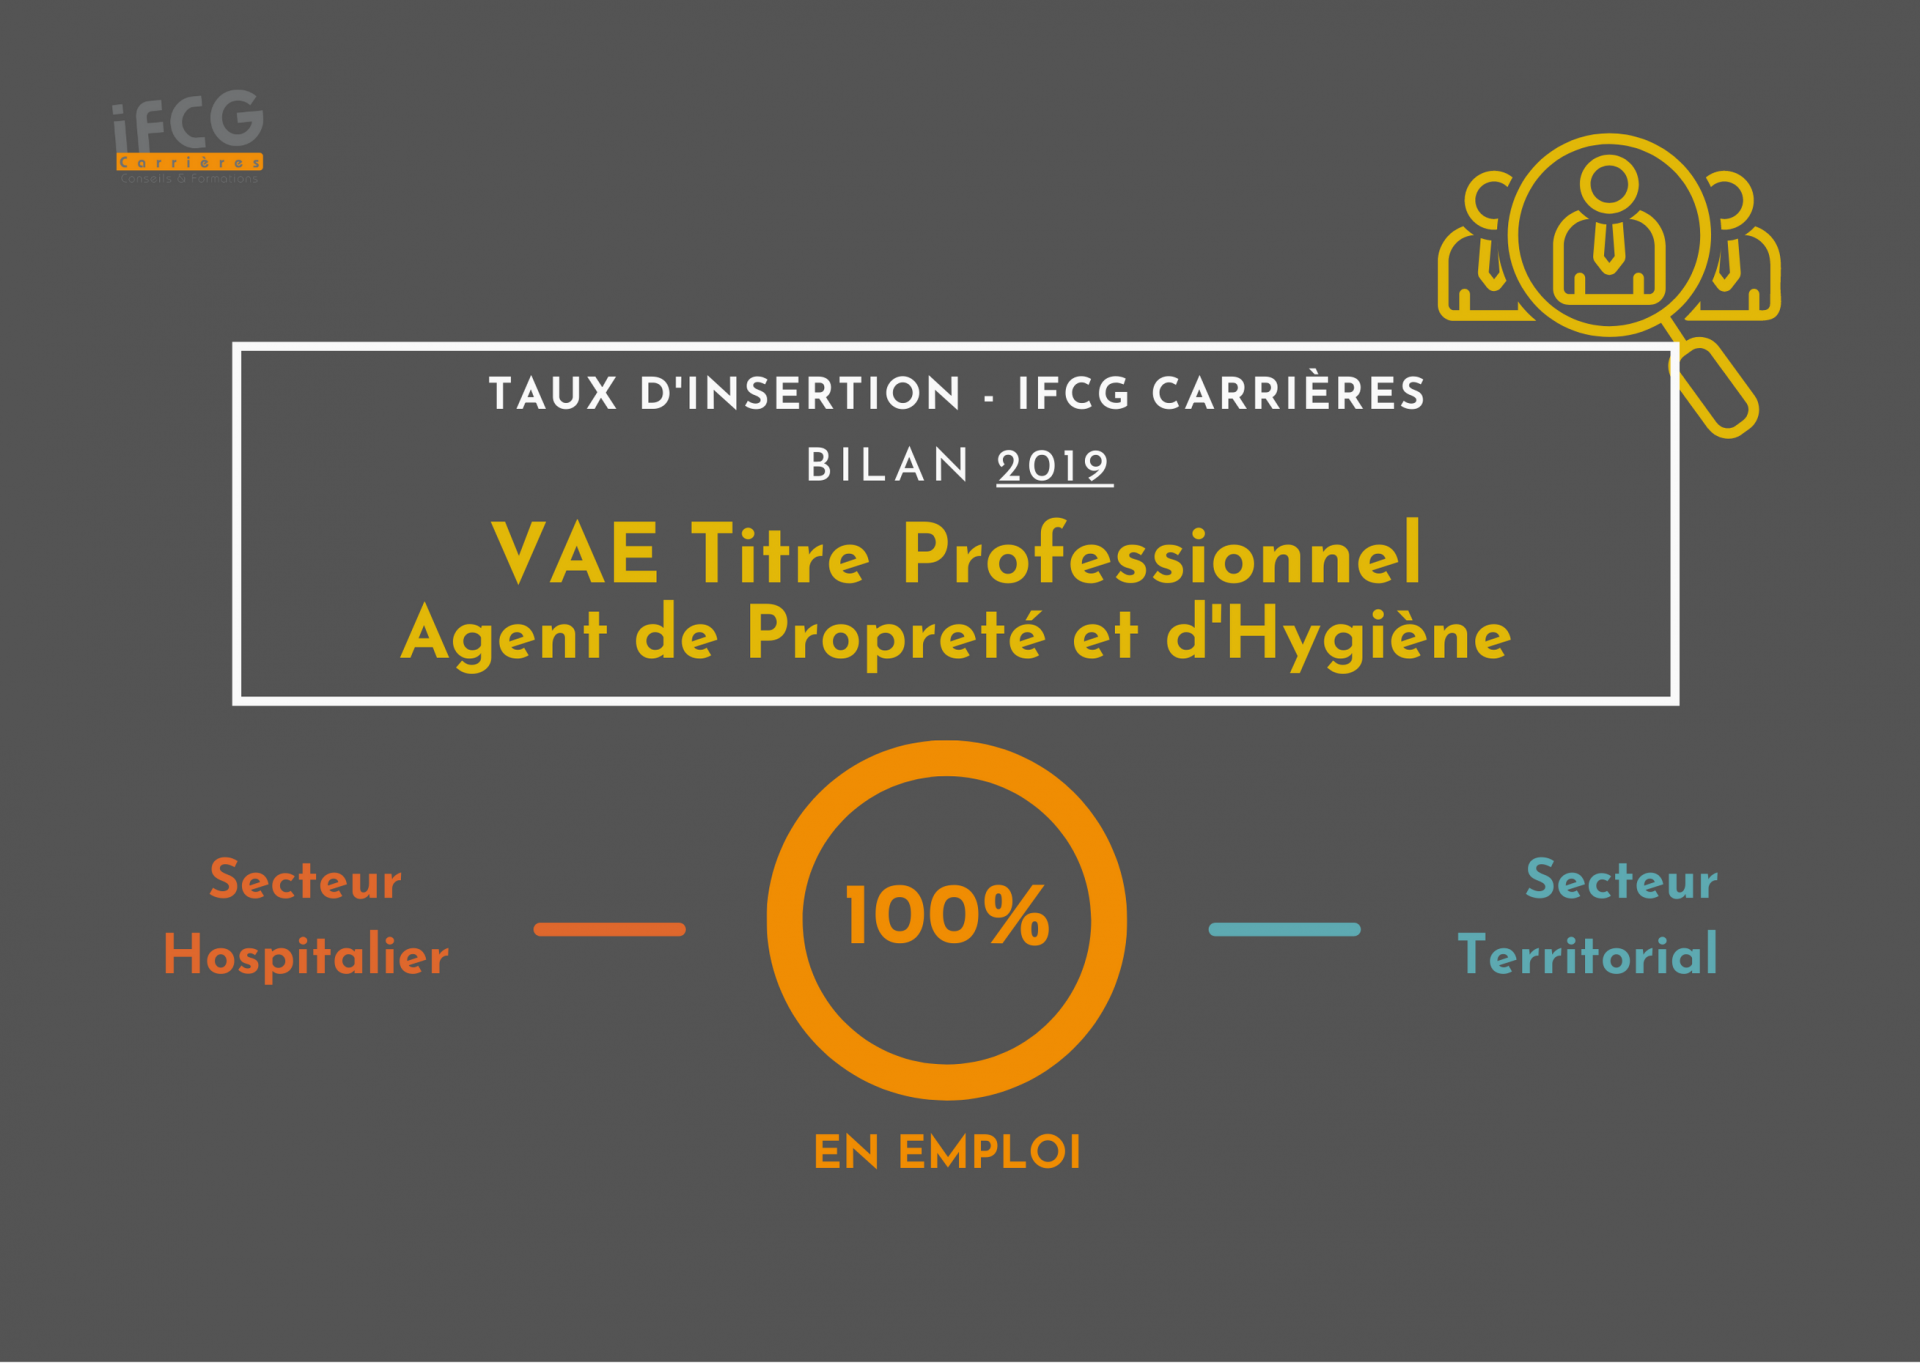 Bilan tauxd insertion vae tp aph ifcg carrieres 2019